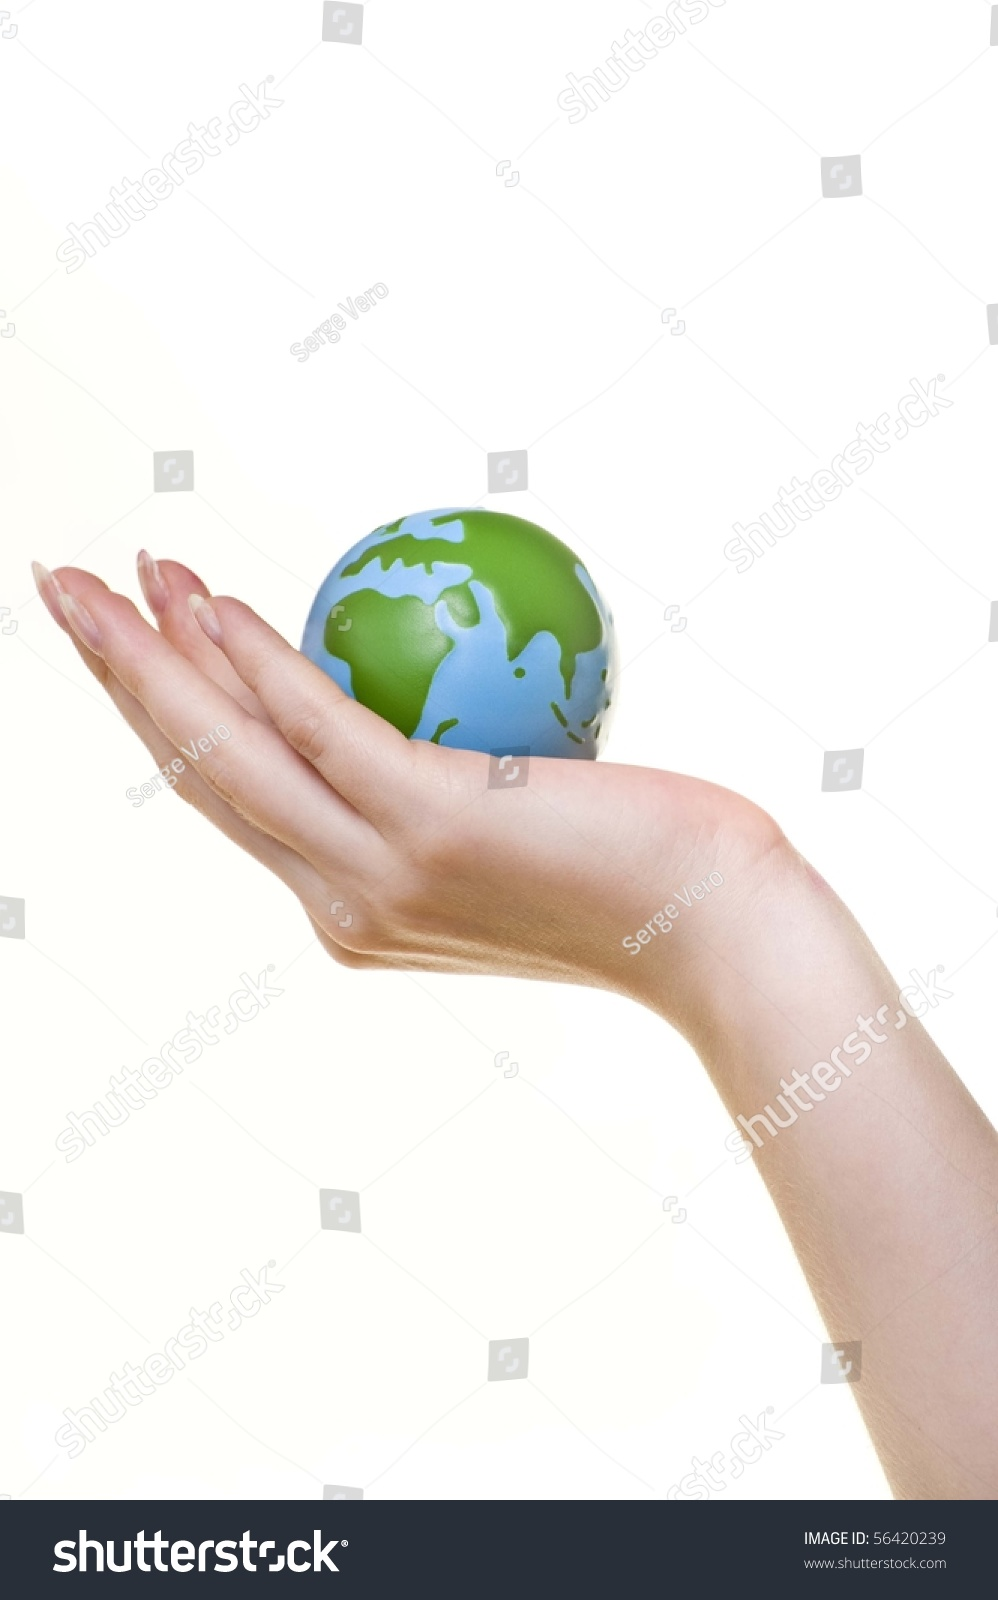 closeup girls hand holding small earth stock photo (edit now Ear Anatomy Diagram close up of a girl\u0027s hand holding small earth ball against white background